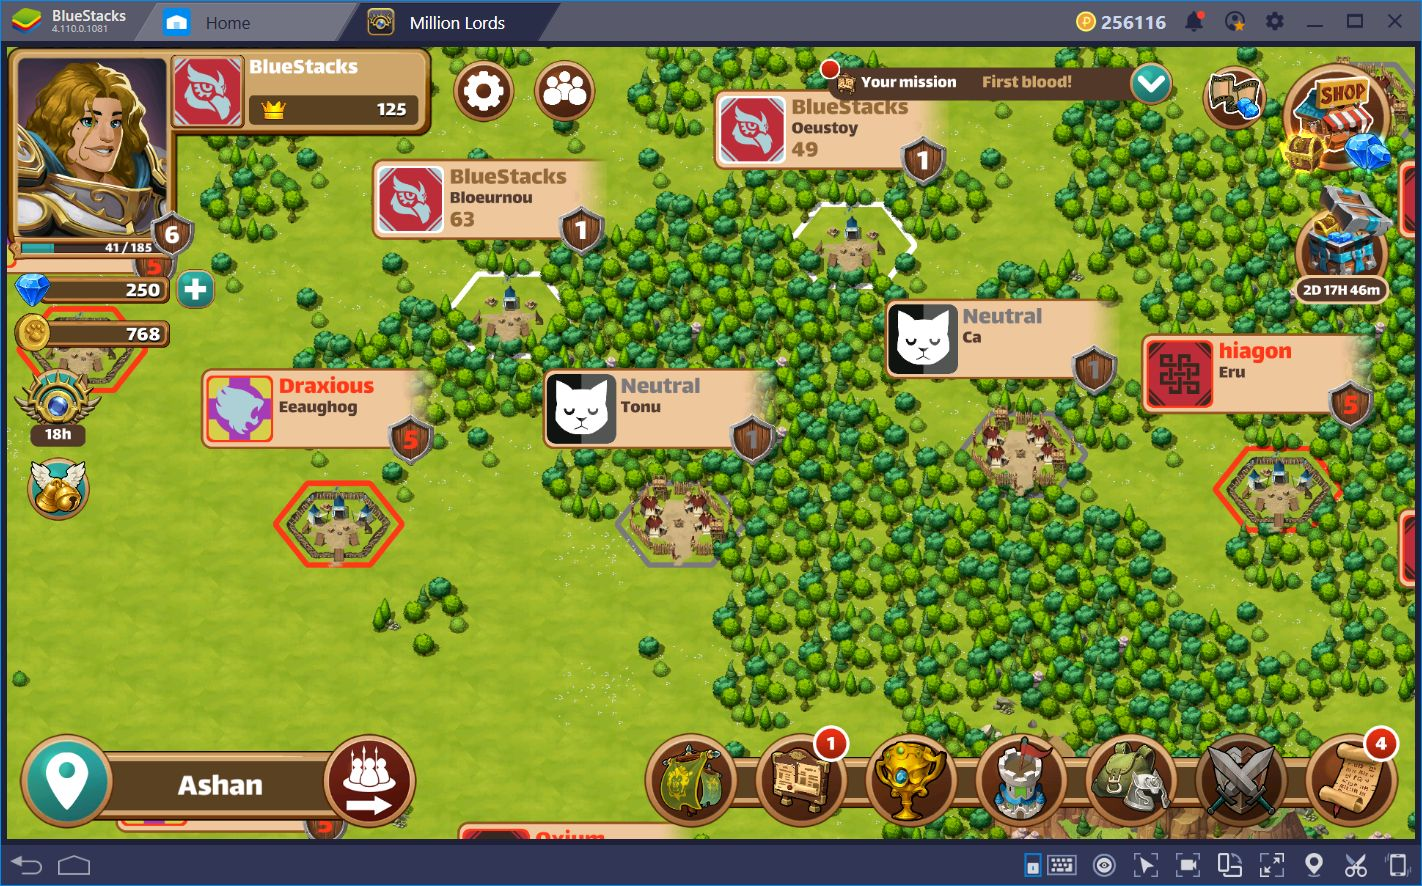 Million Lords on BlueStacks: Mobile Strategy, Abridged